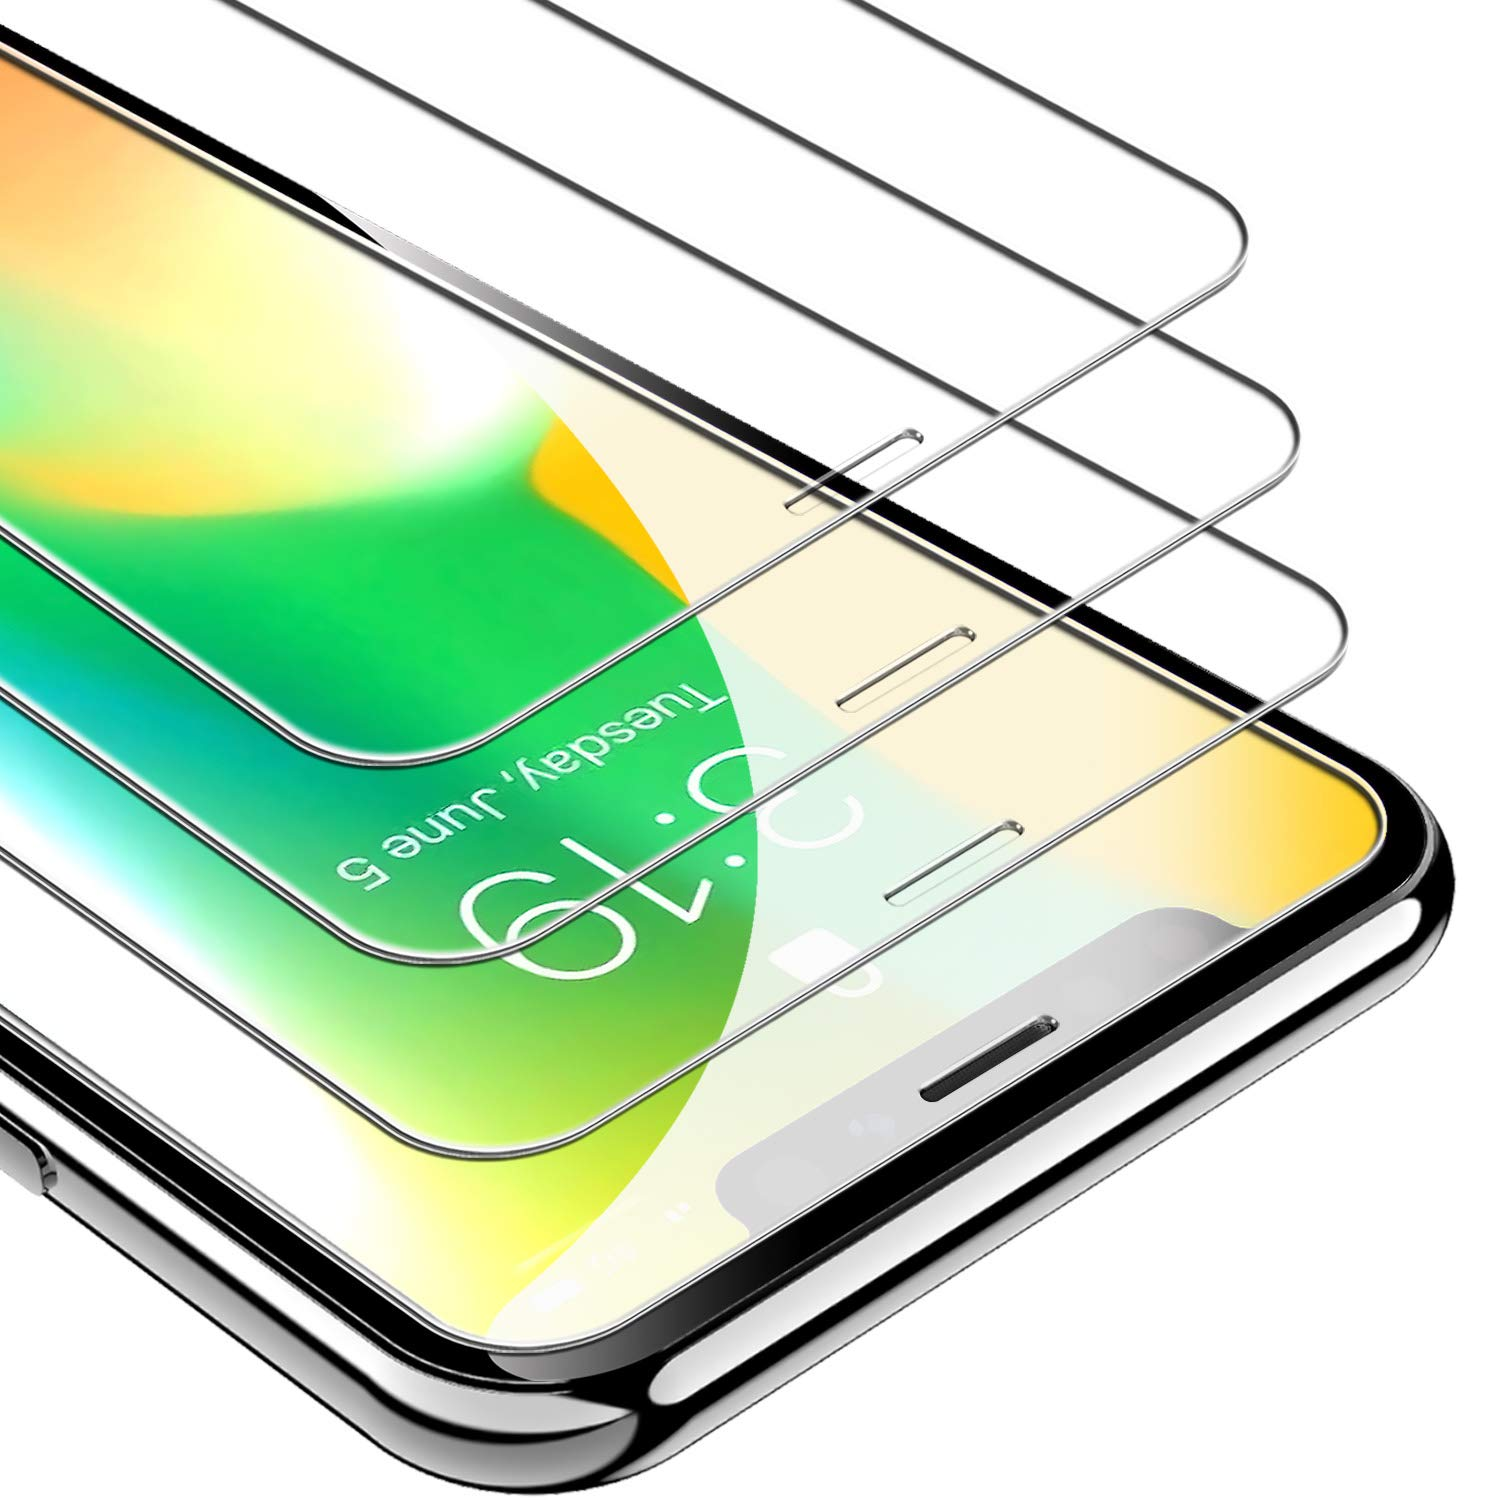 UNBREAKcable Screen Protector for iPhone X/XS/ 11 Pro 3-Pack 5.8 Inch, 9H Hardness Tempered Glass for iPhone 11 Pro/XS/X, Case Friendly, Anti-Bubbles, Free Installation Frame, Anti-Scratch